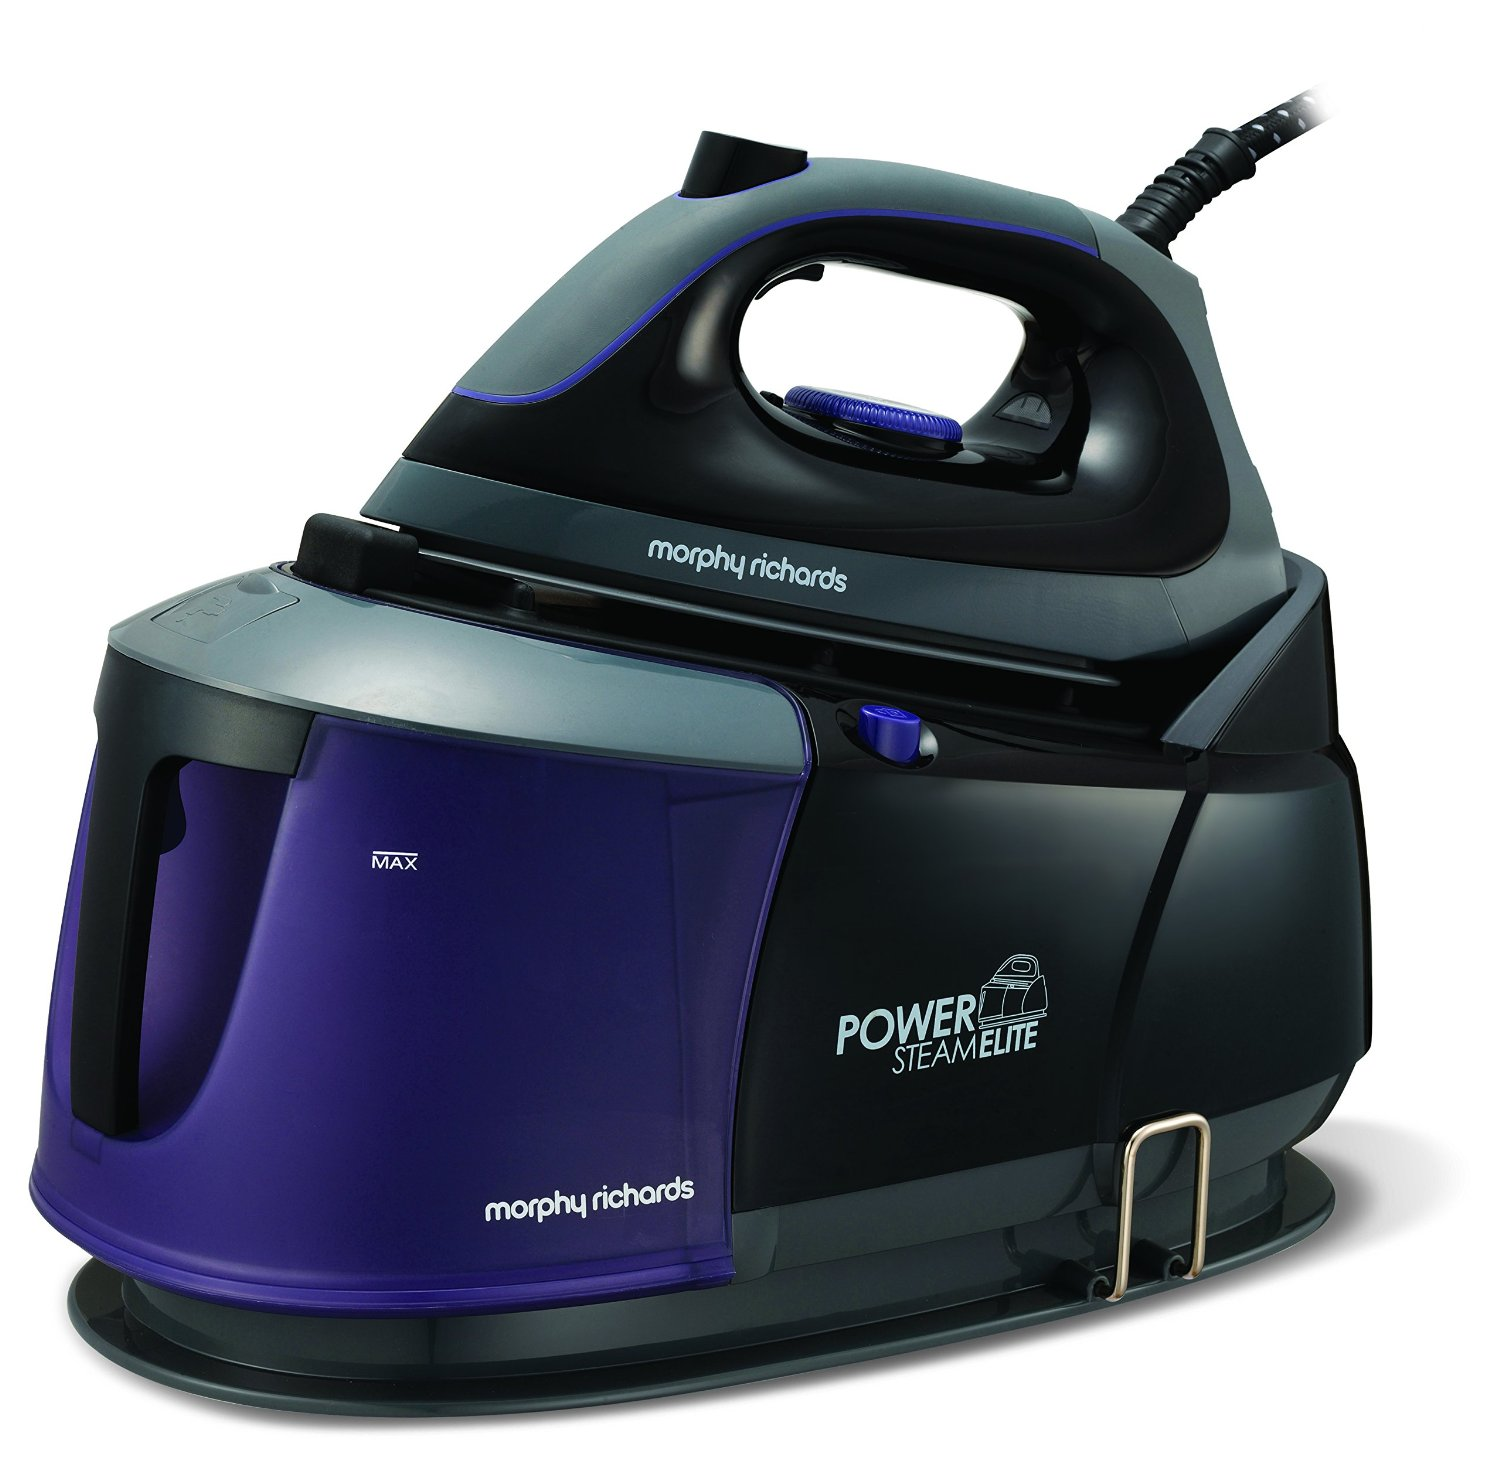 Morphy Richards Power Steam Elite 332000